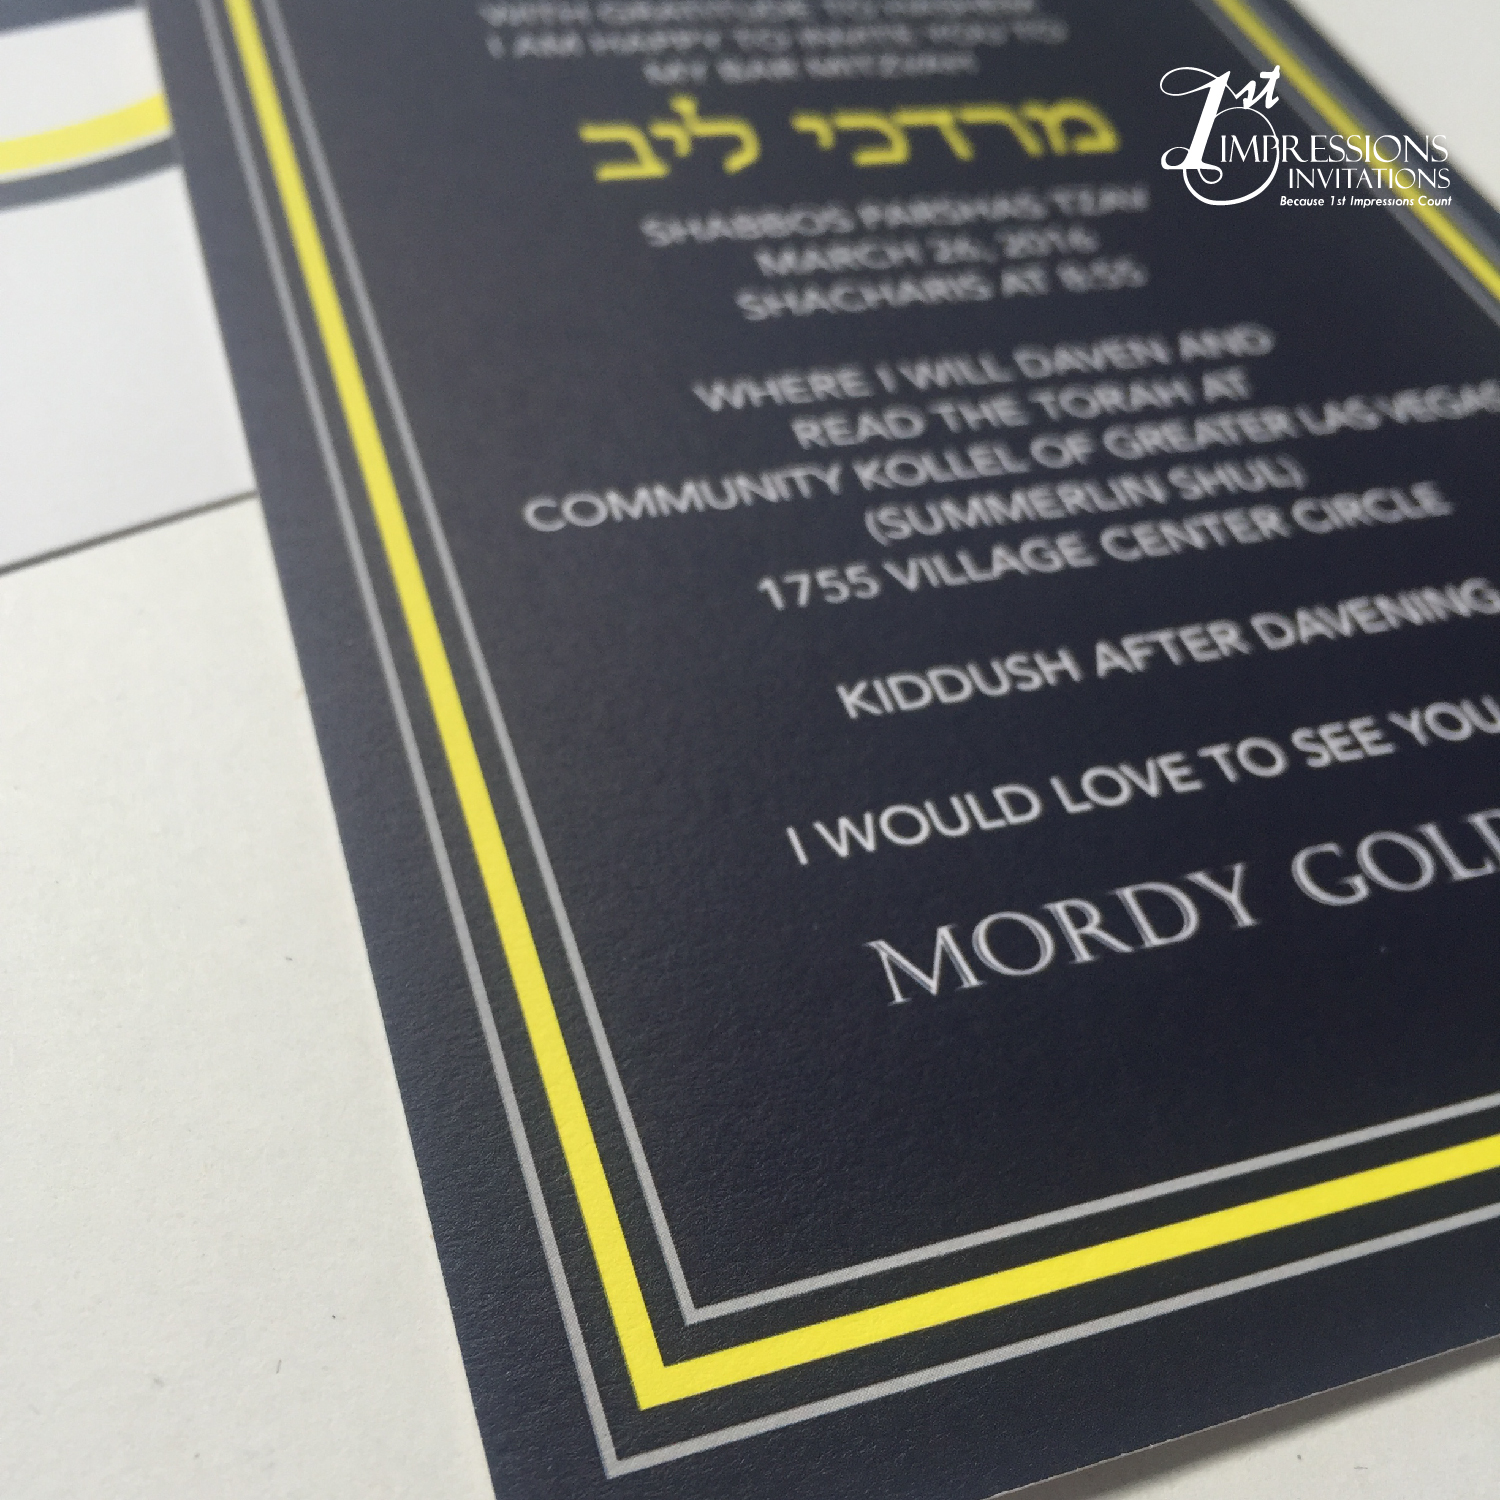 1st impressions invitations blue and yellow modern bar mitzvah